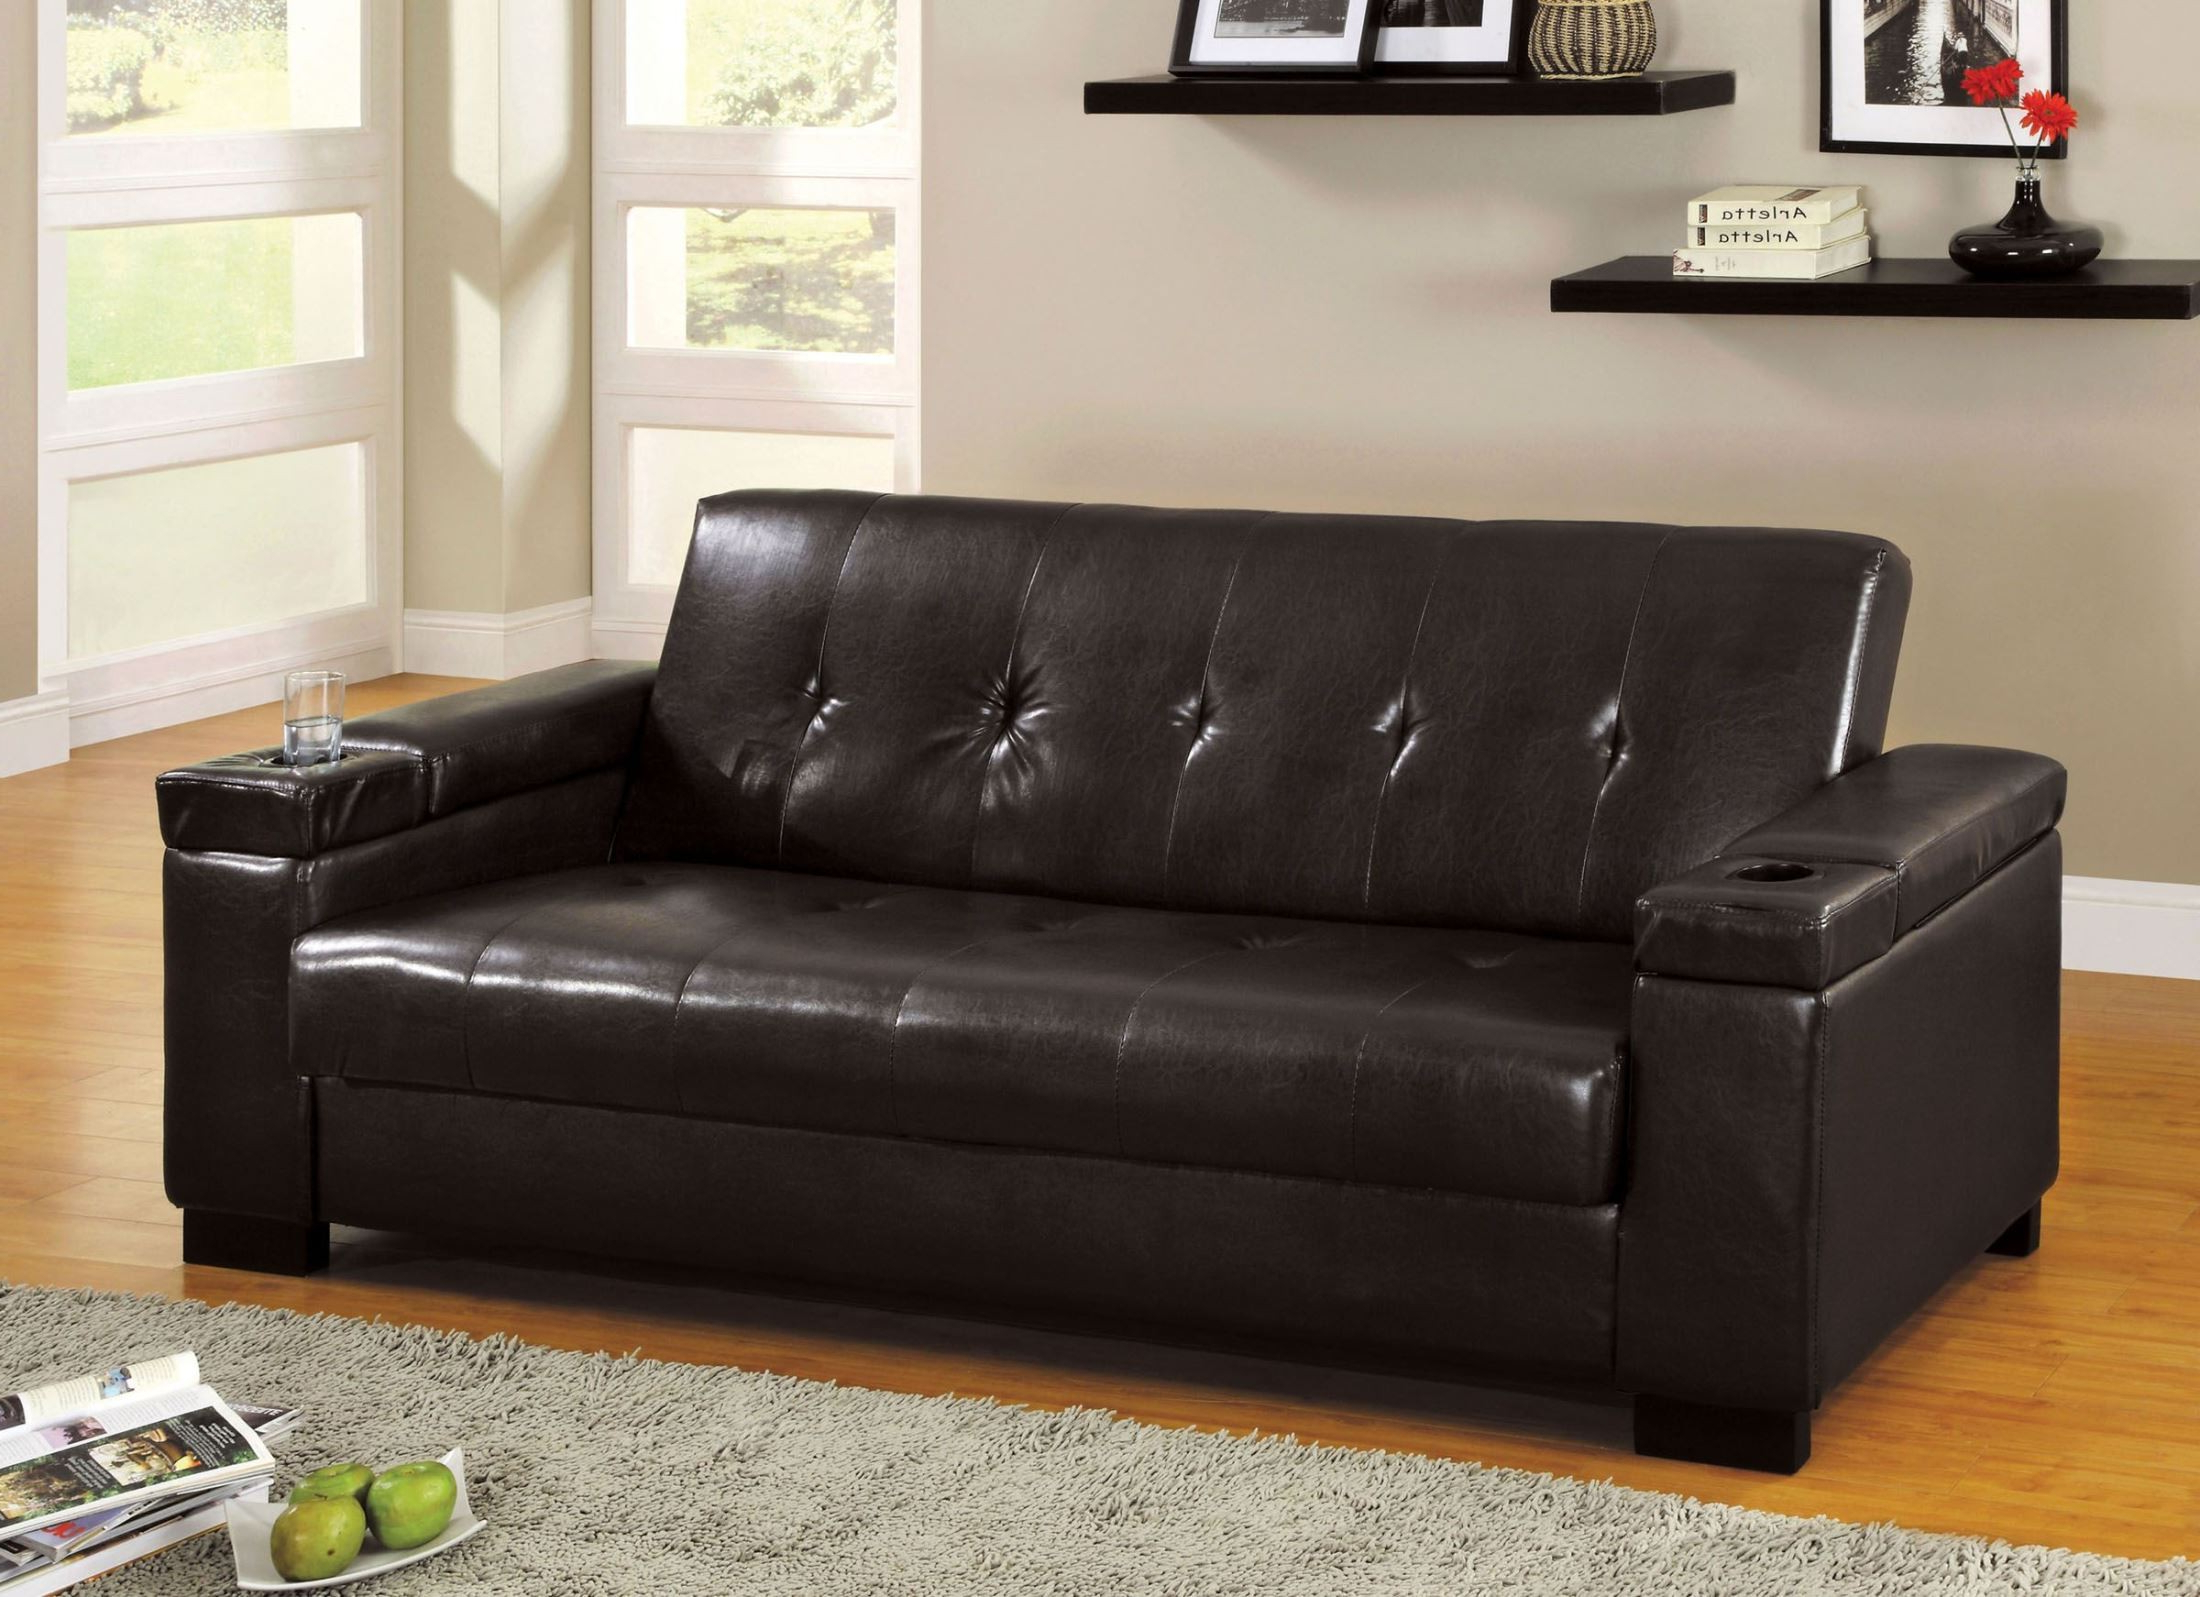 Fashionable Logan Leatherette Futon Storage Sofa From Furniture Of With Liberty Sectional Futon Sofas With Storage (View 15 of 25)